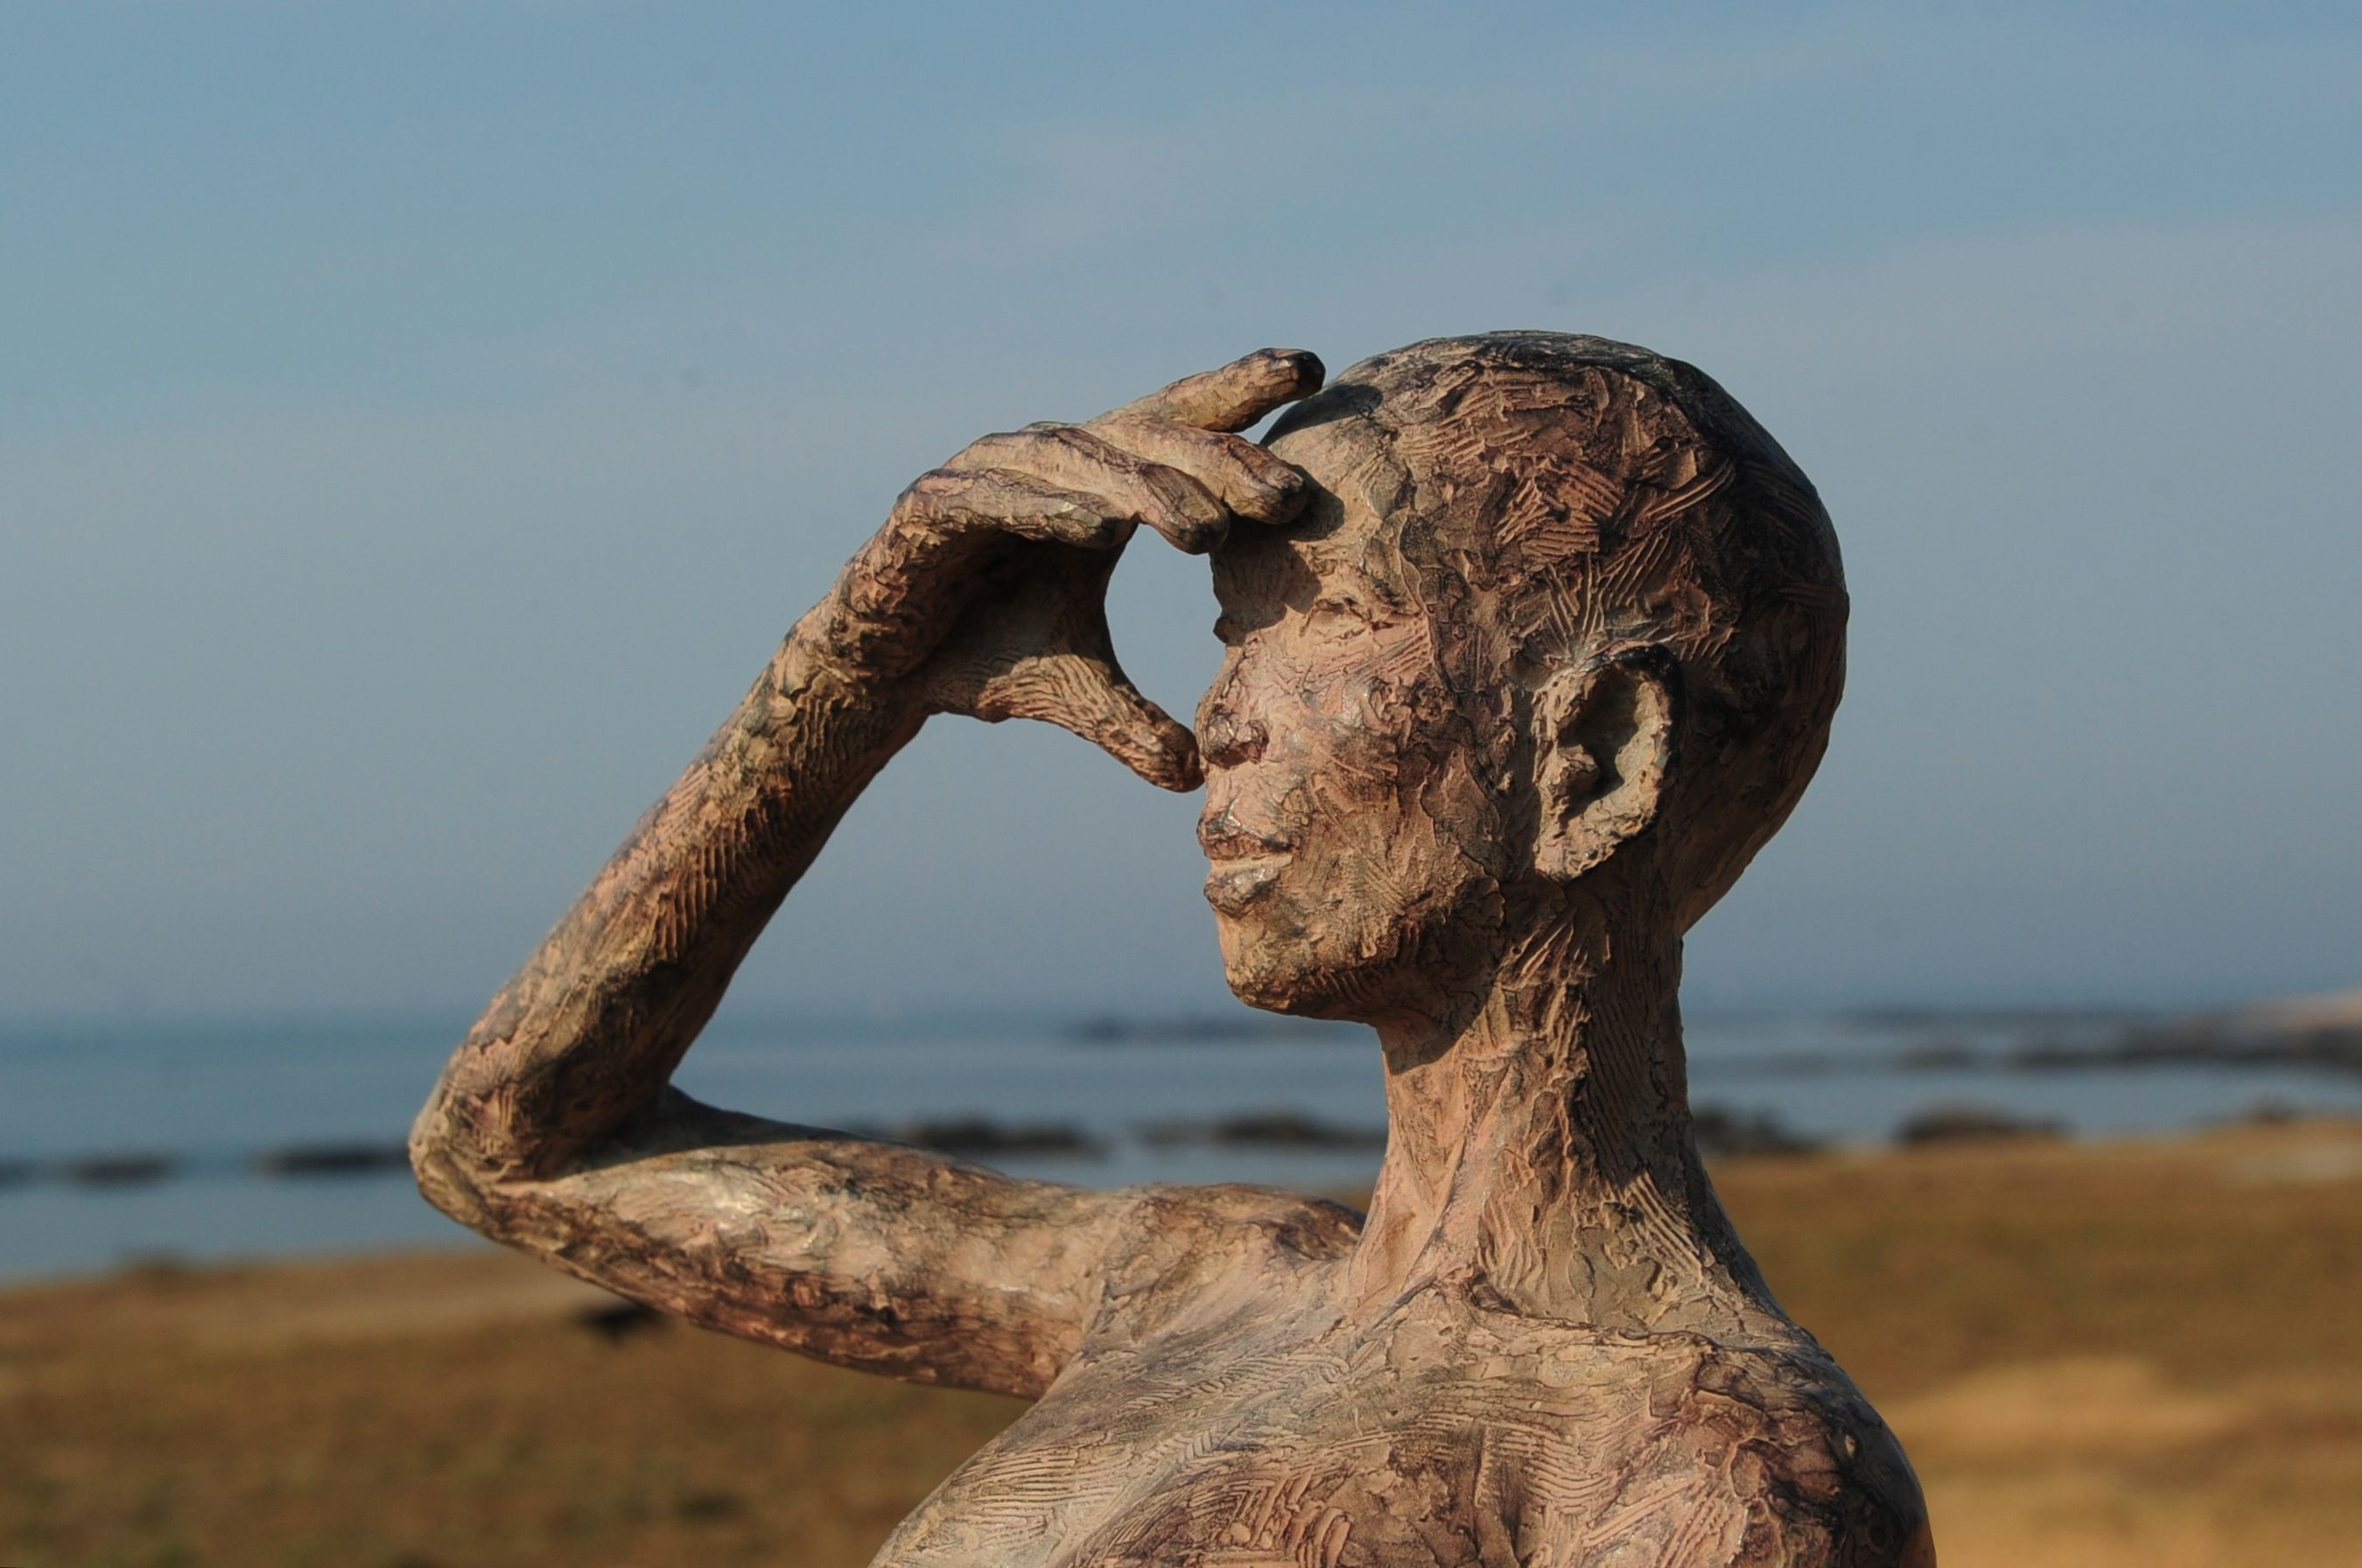 The Waiting Time,Marine de Soos,Sculpture, detail 1